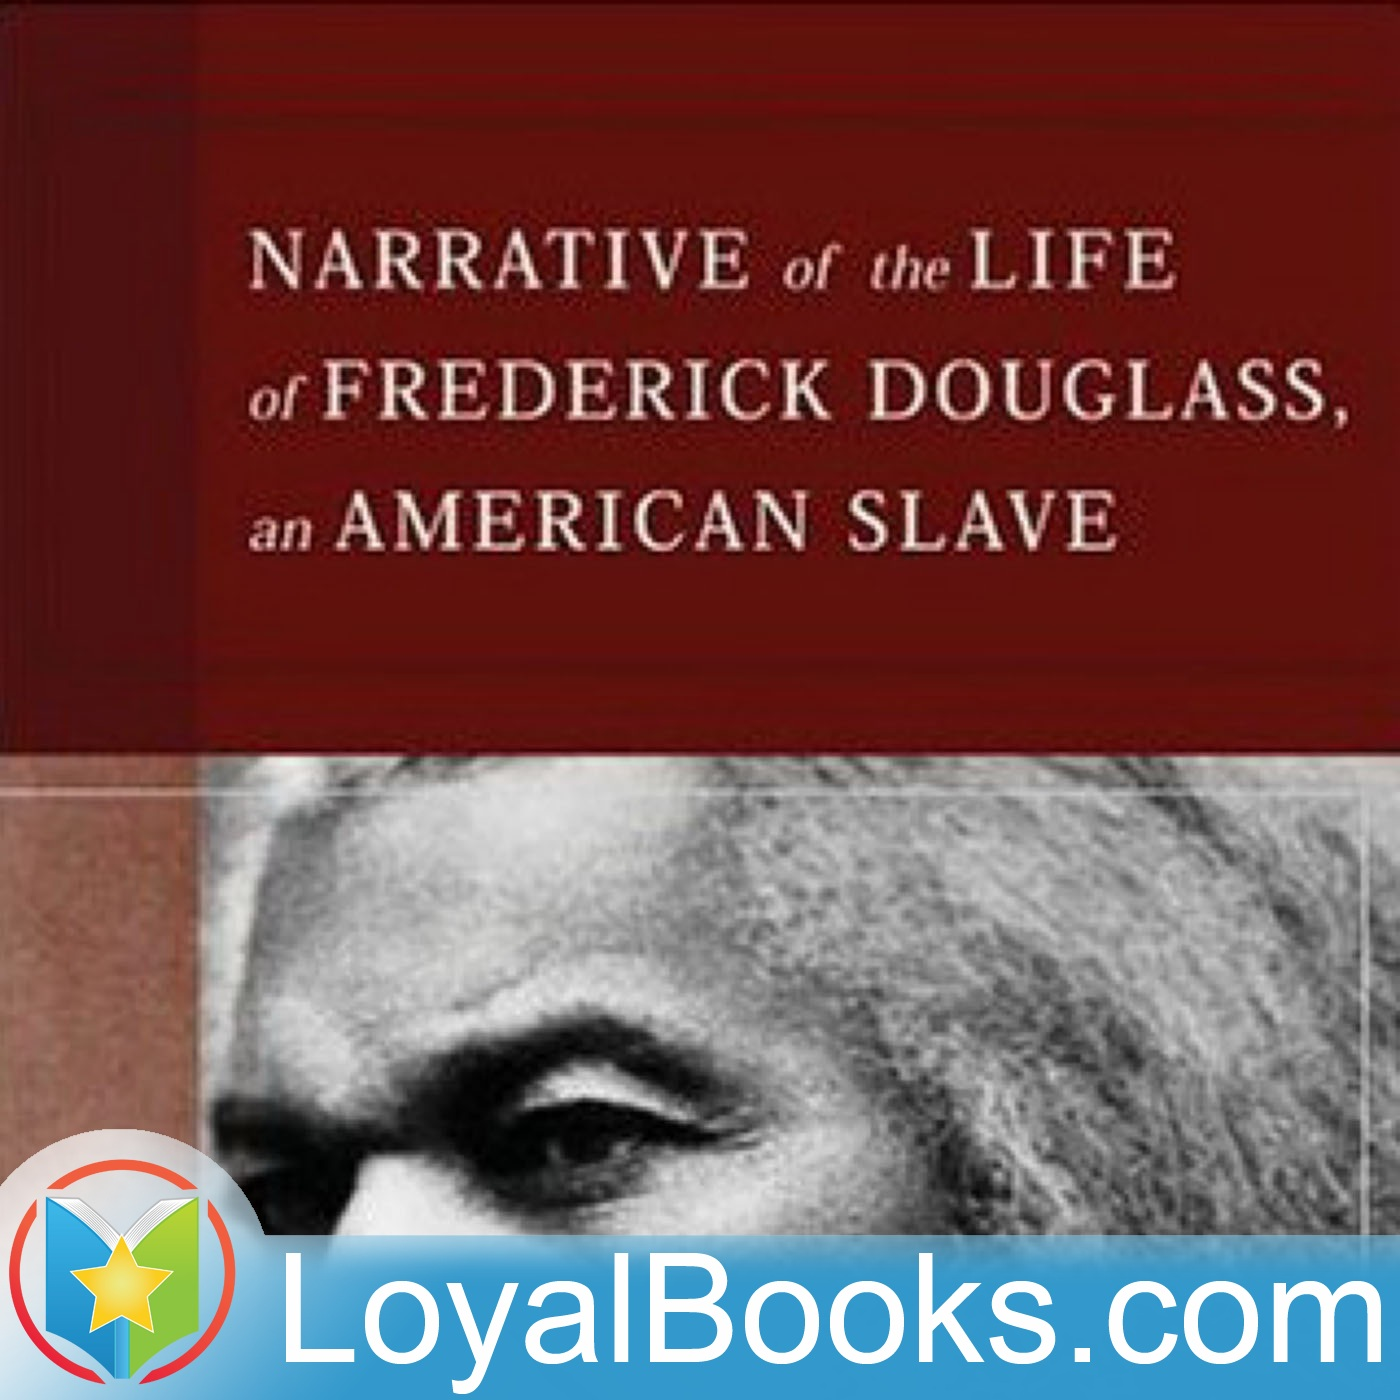 <![CDATA[Narrative of the Life of Frederick Douglass by Frederick Douglass]]>